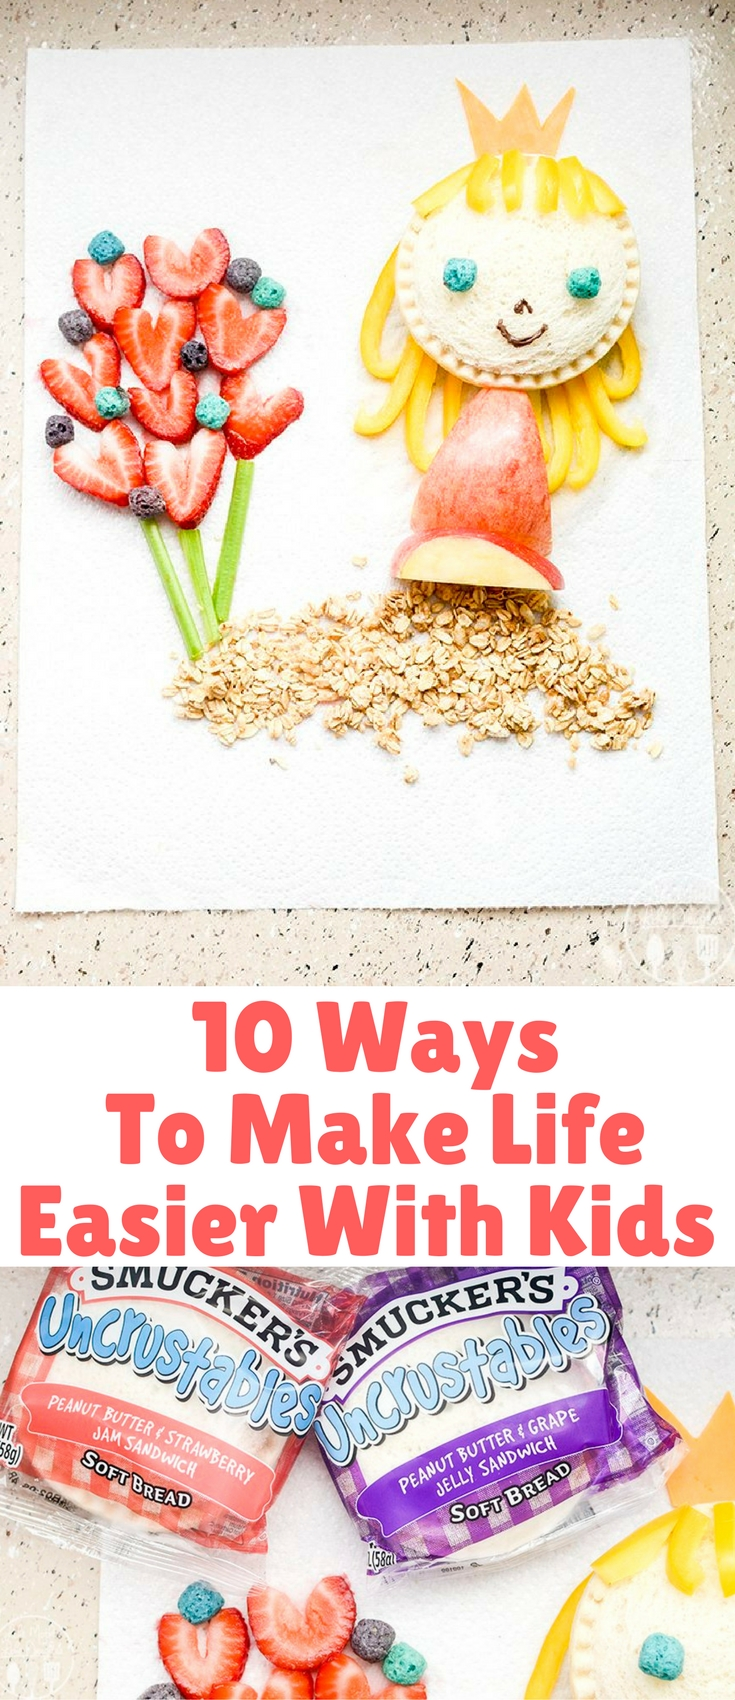 We know we all need as much help as we can get, so here are 10 ways to make life easier with kids.